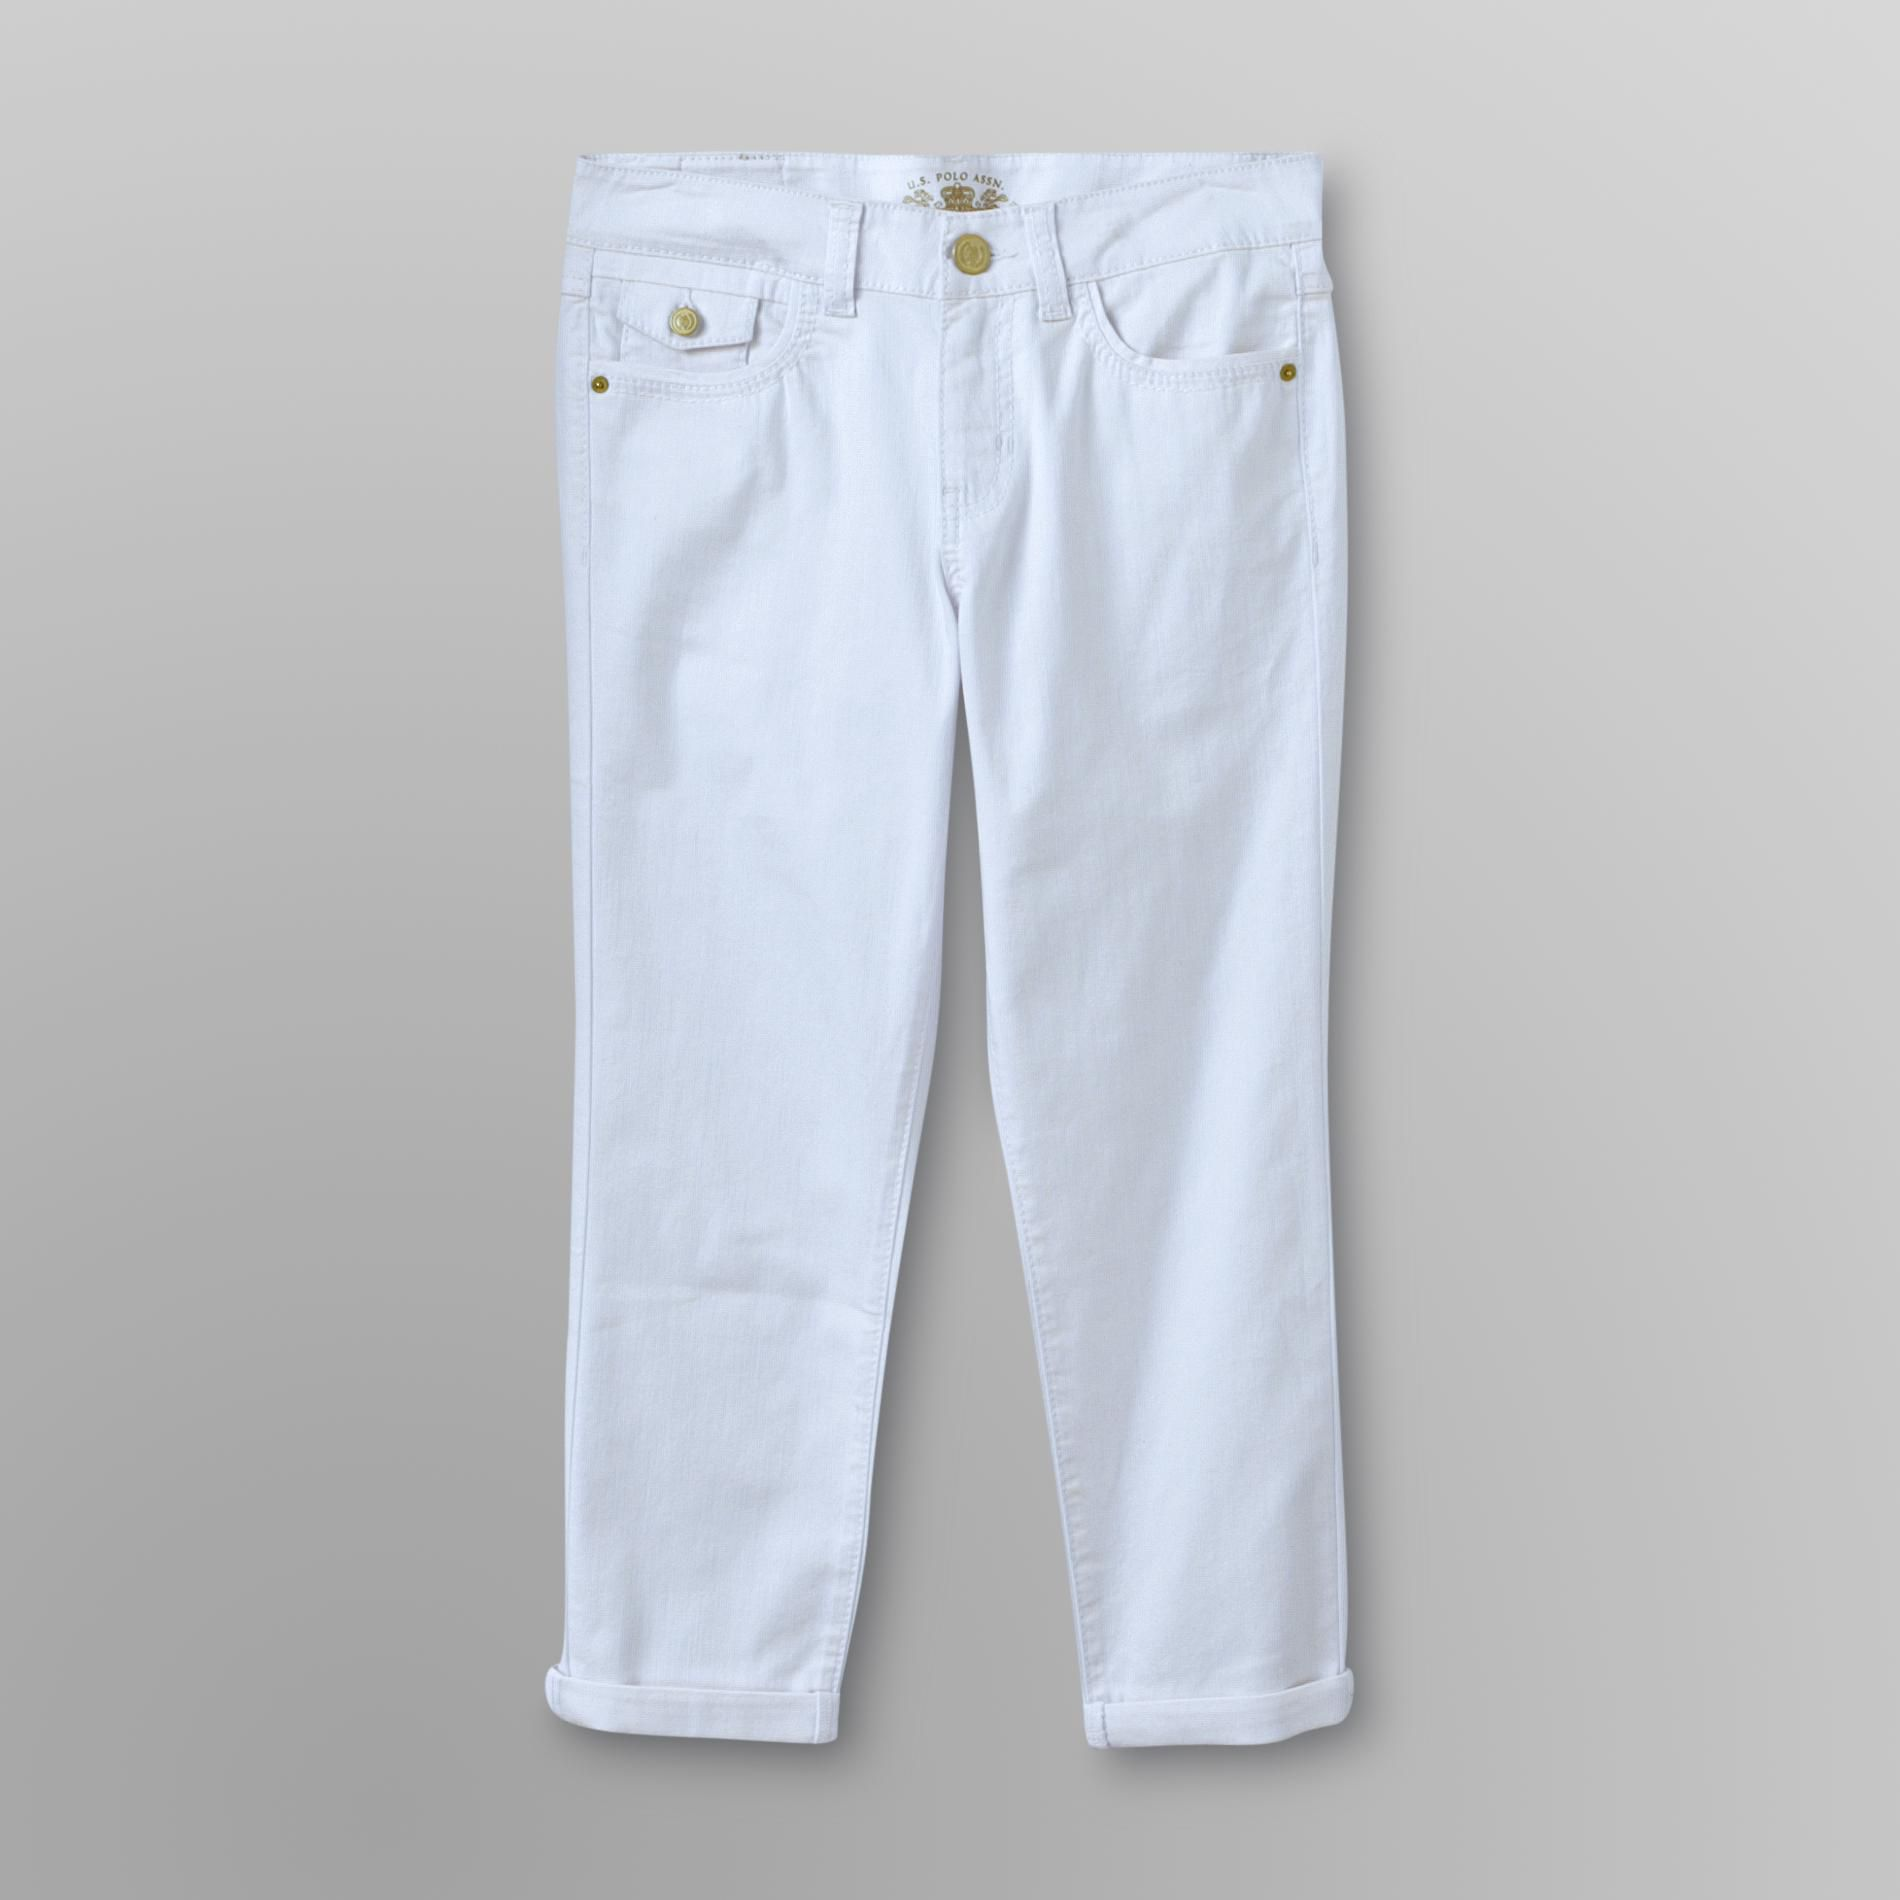 US Polo Assn. Women's Cuffed Ankle Jeans at Sears.com